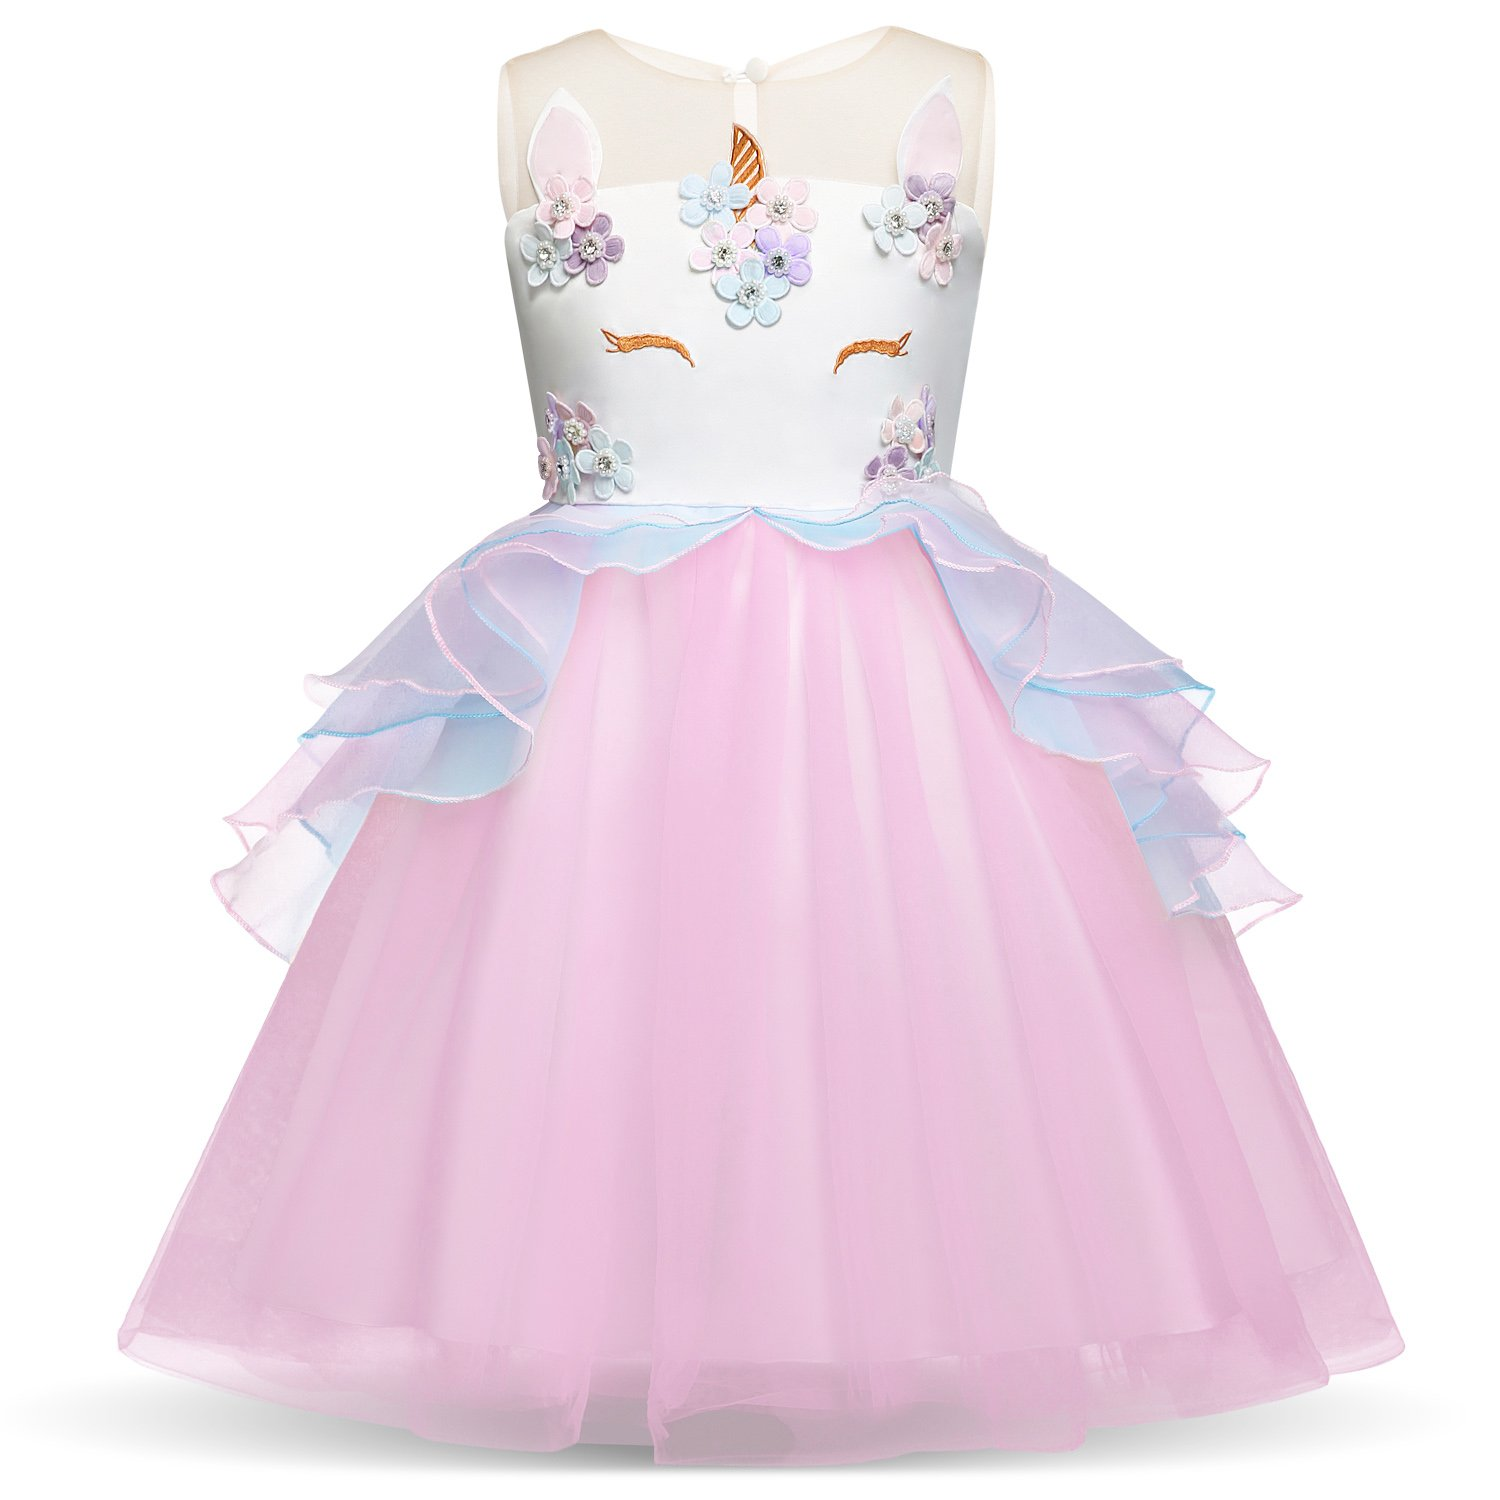 HUANQIUE Girls Dress Pageant Party Birthday Dresses Ball Gowns